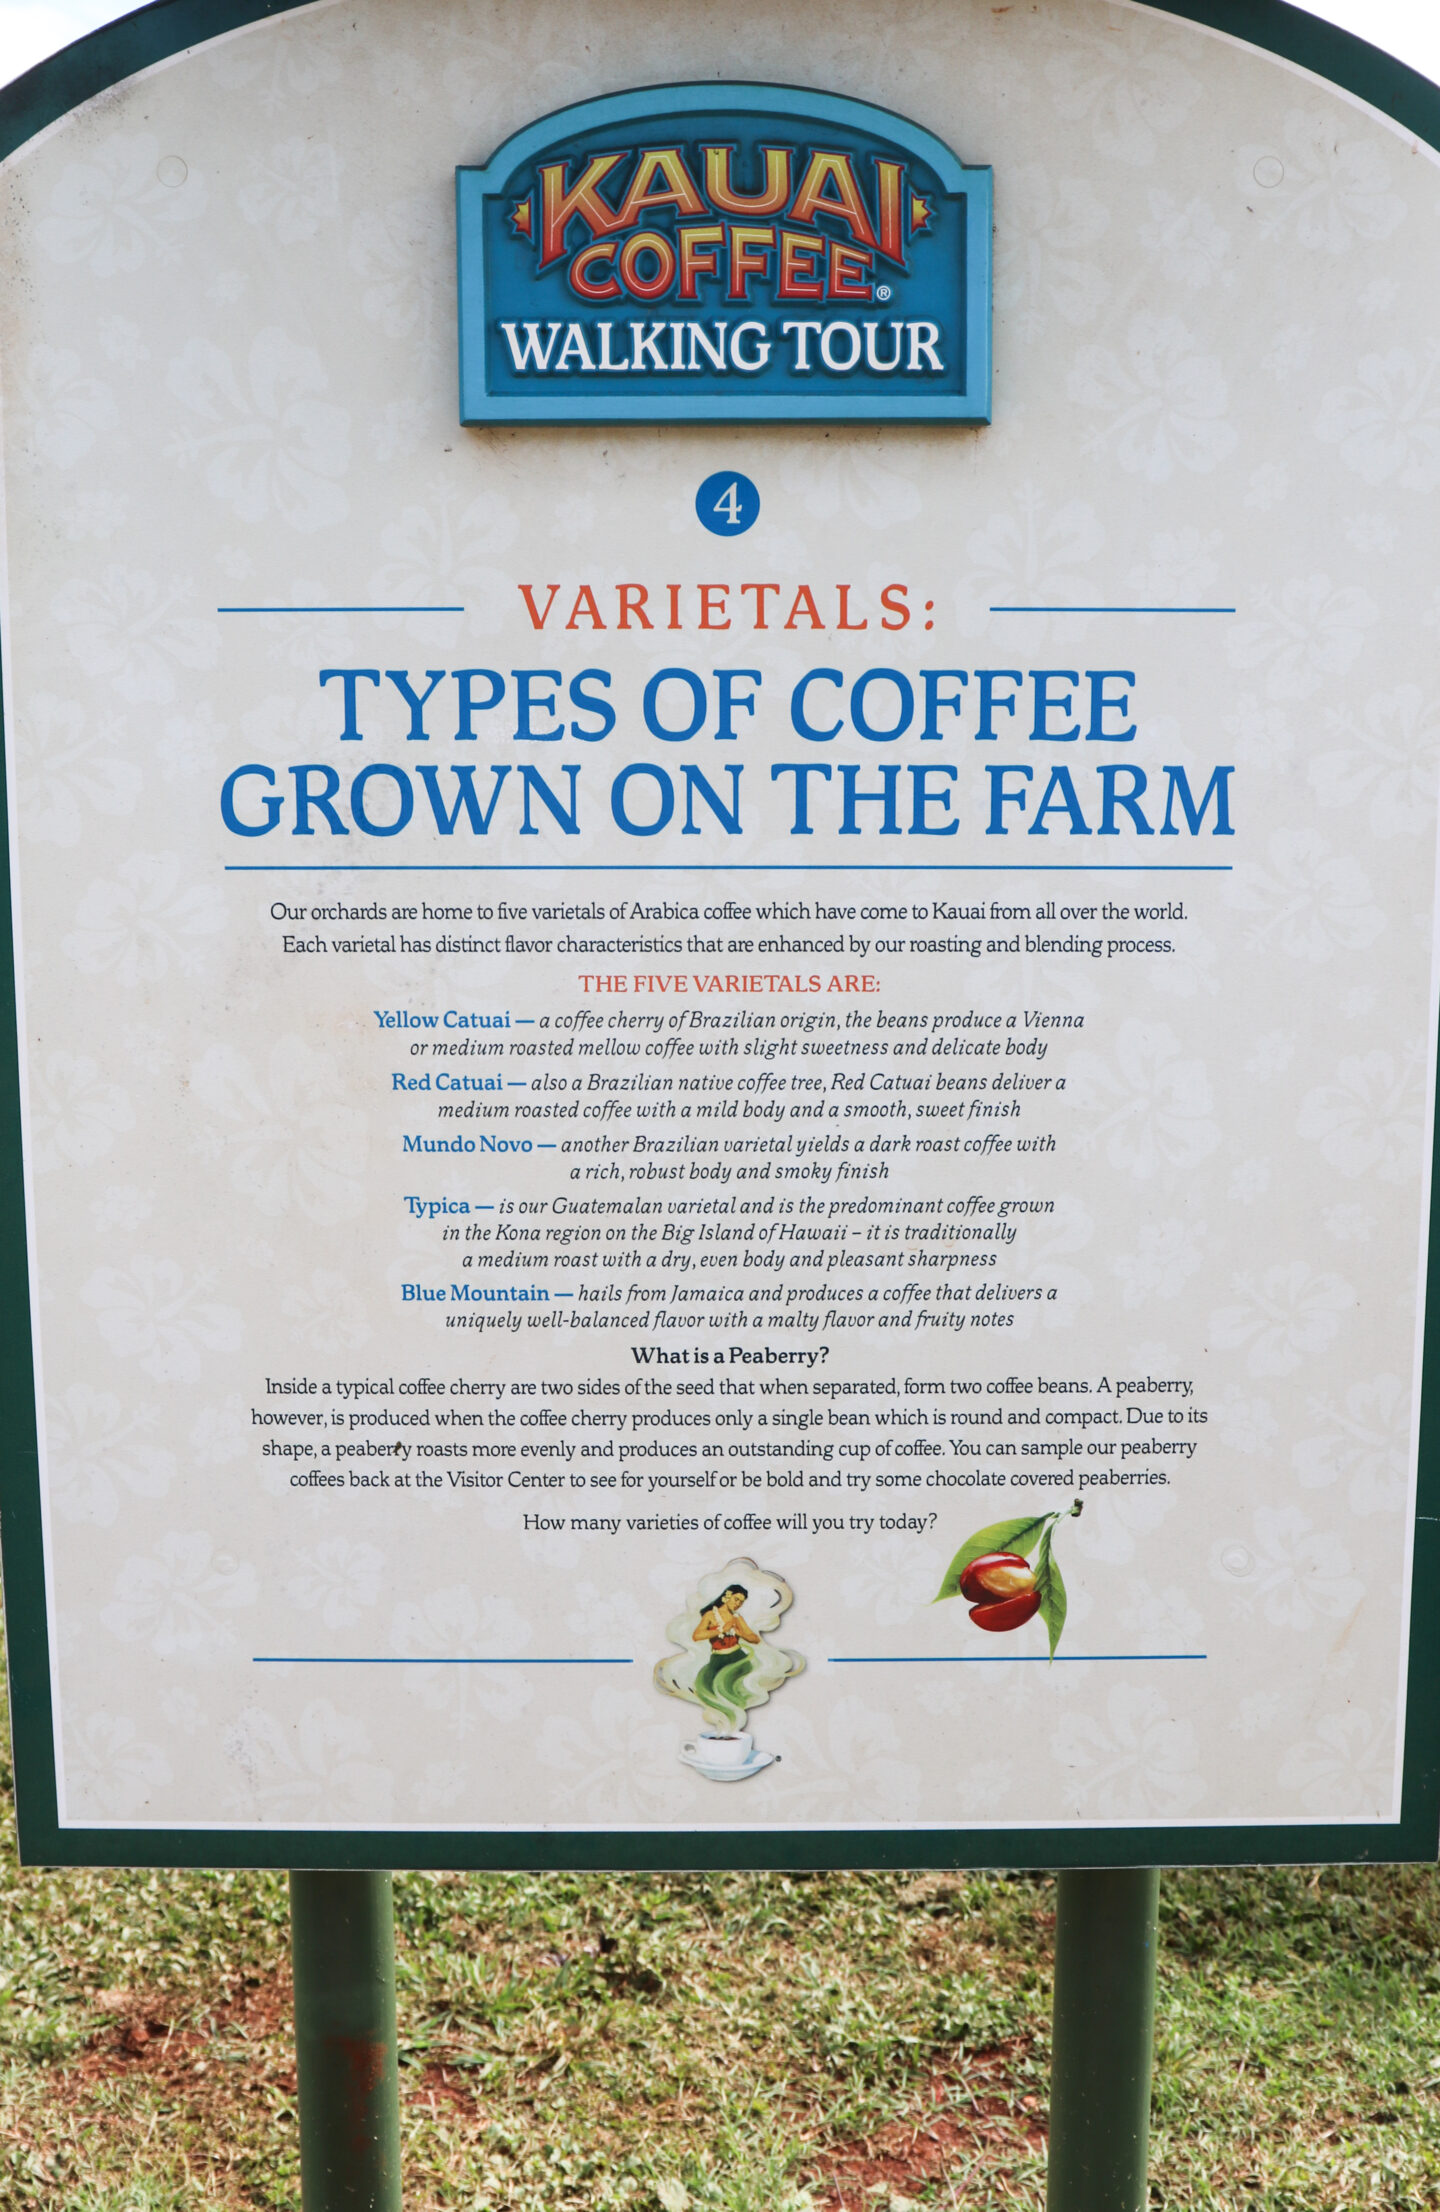 types of coffee grown on kauai farm